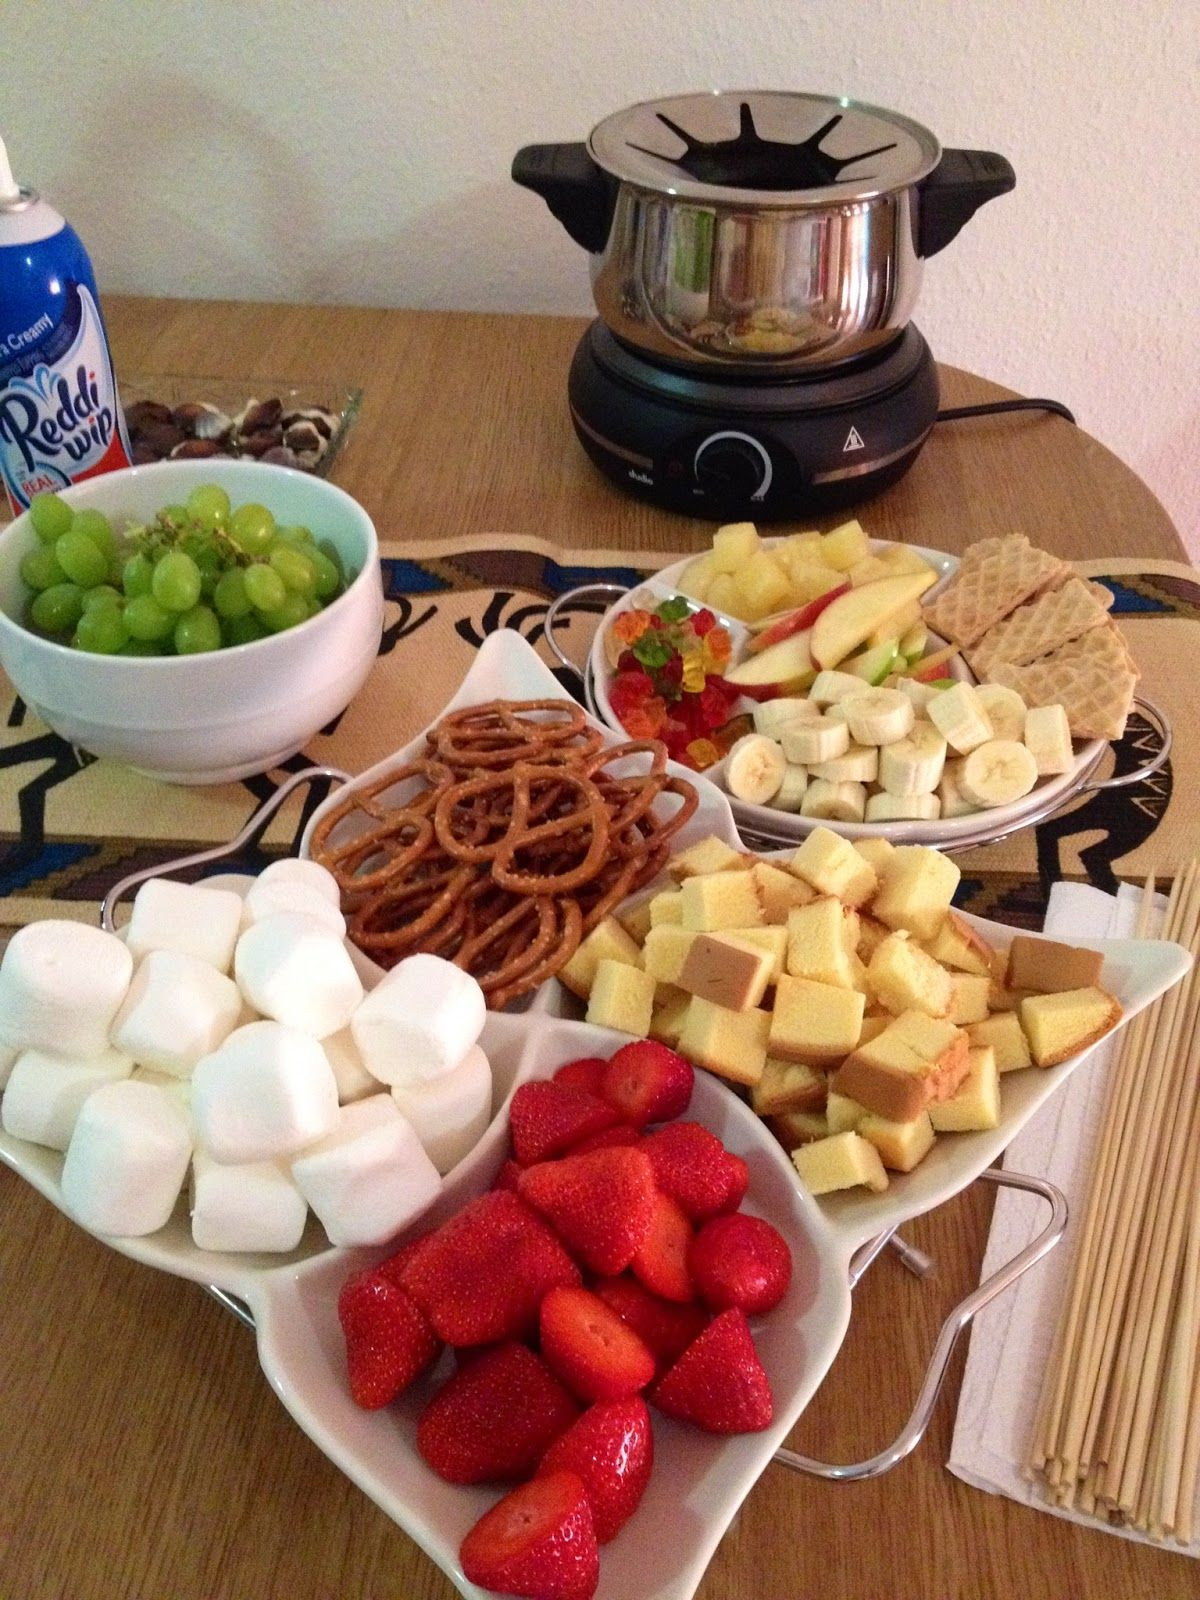 Healthy Snacks For Game Night  Girls Night In With chocolate fondue recipe